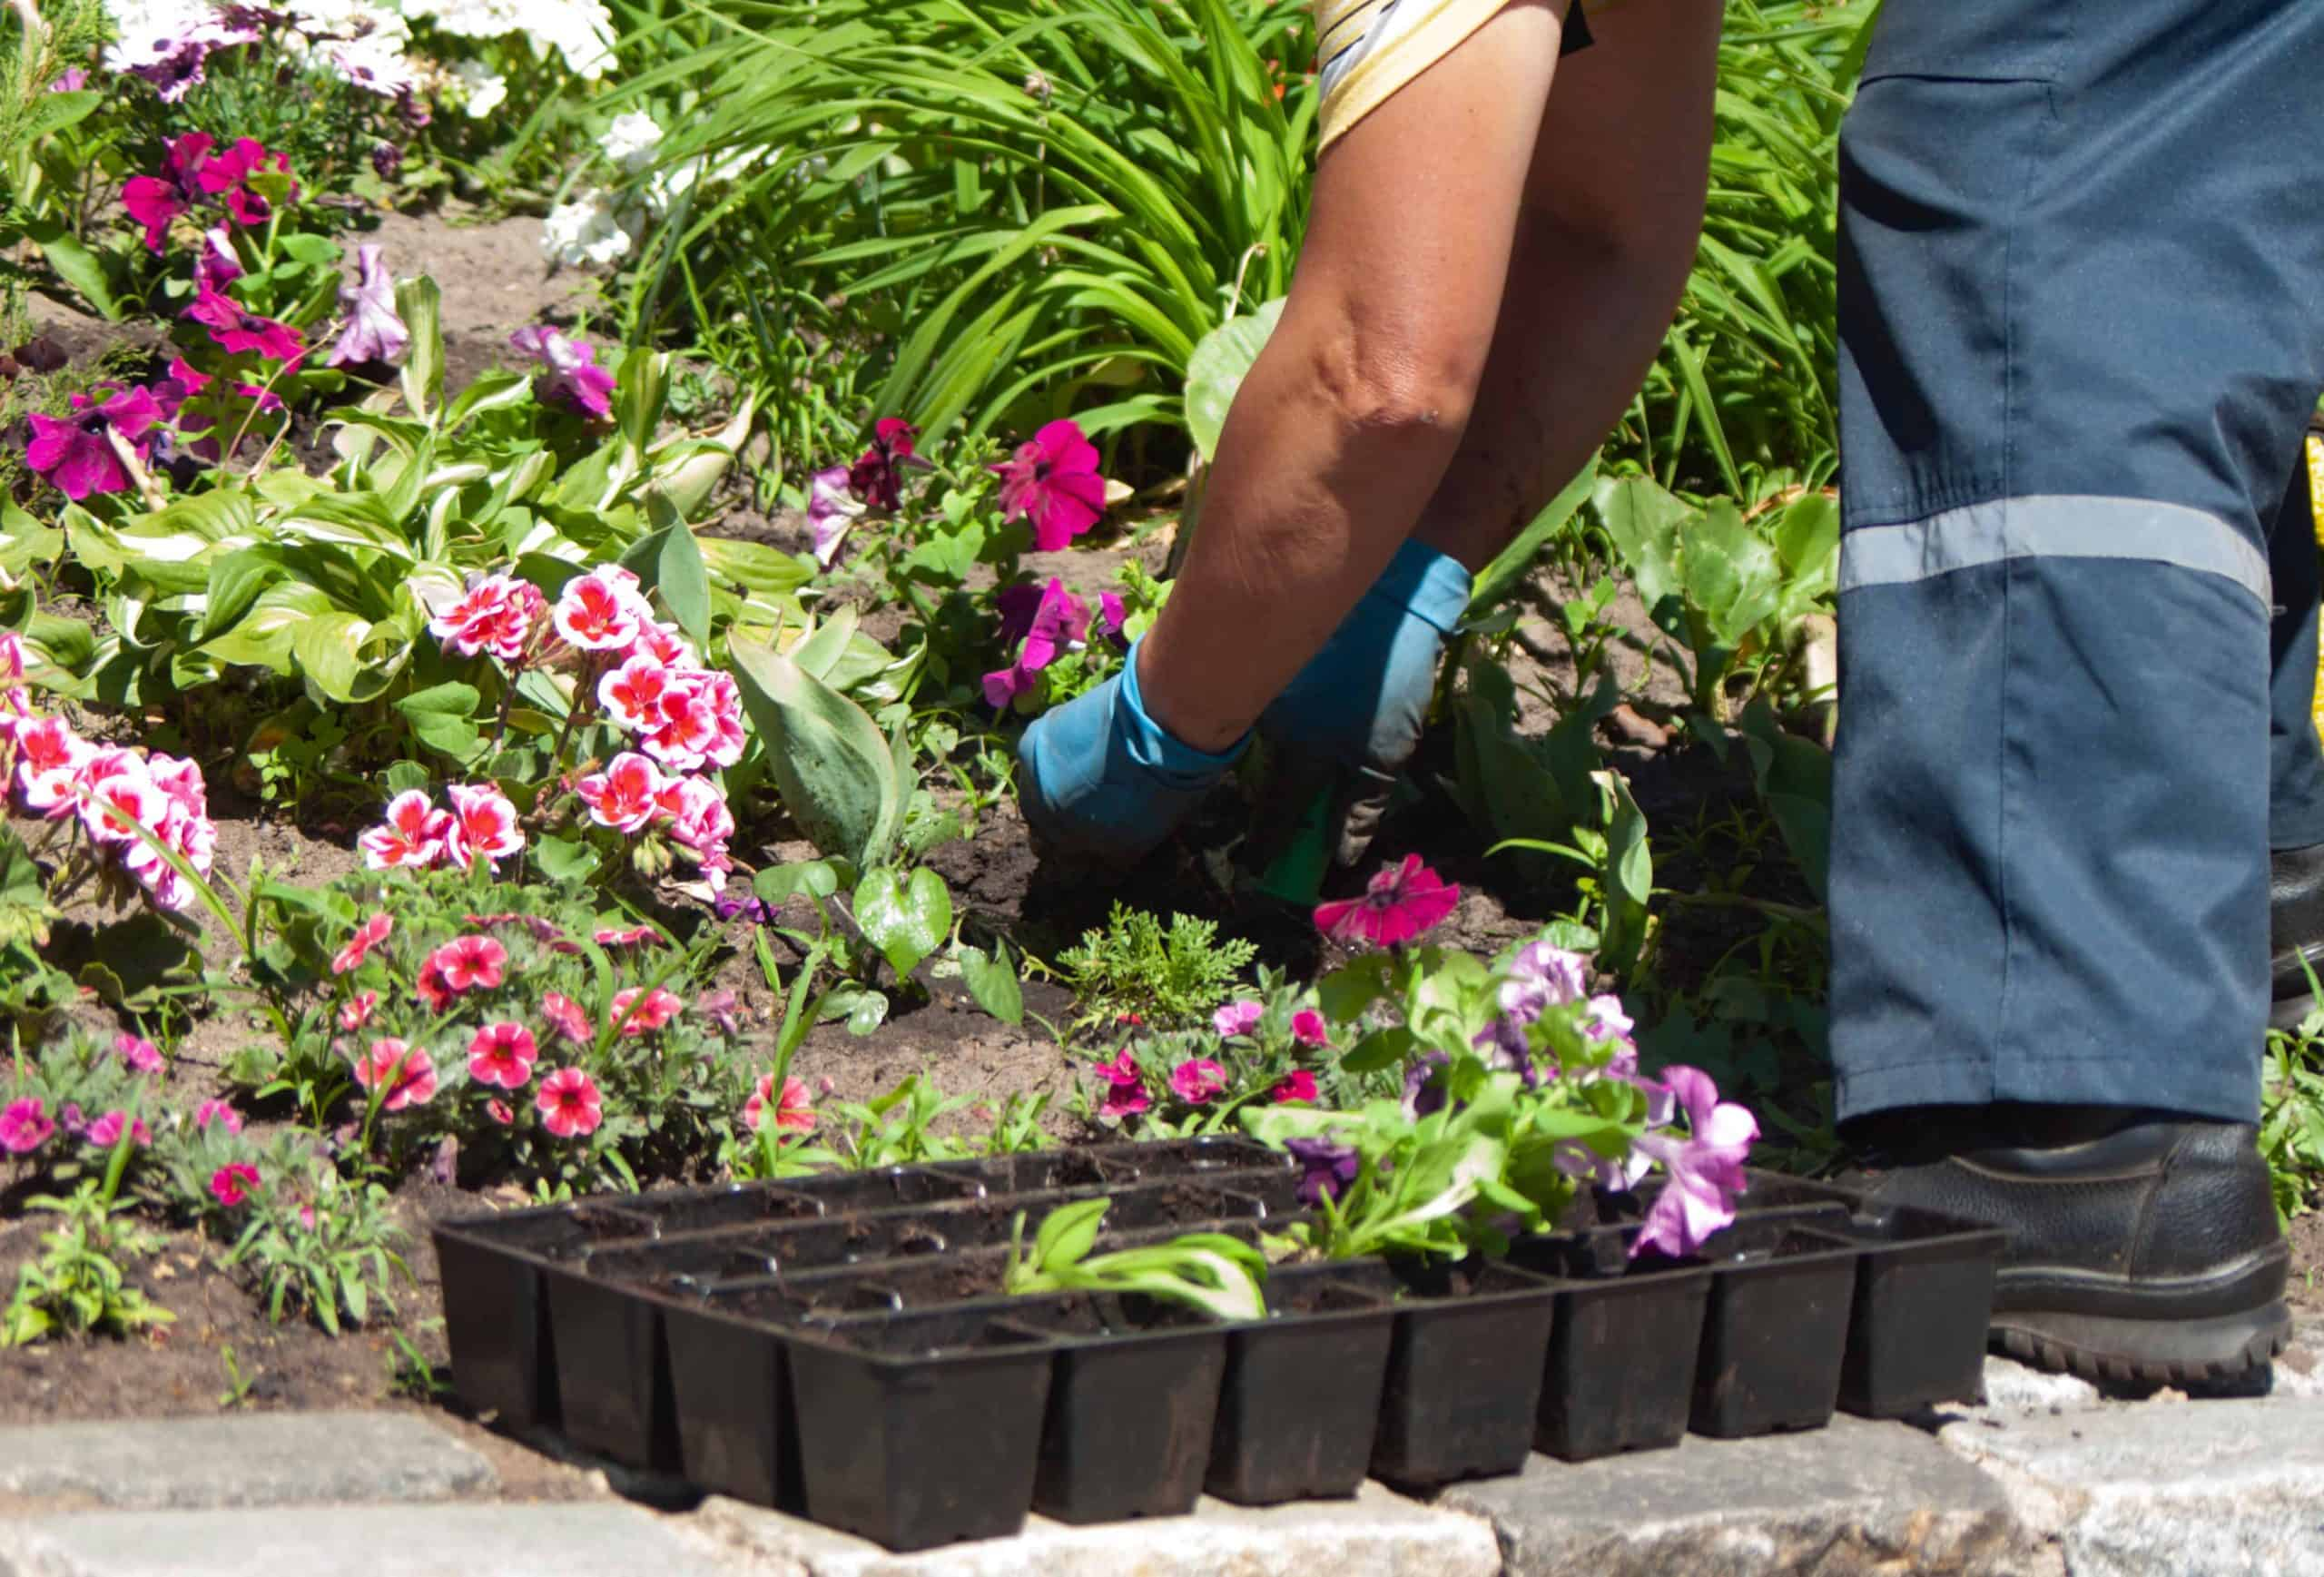 planting flowers with compost